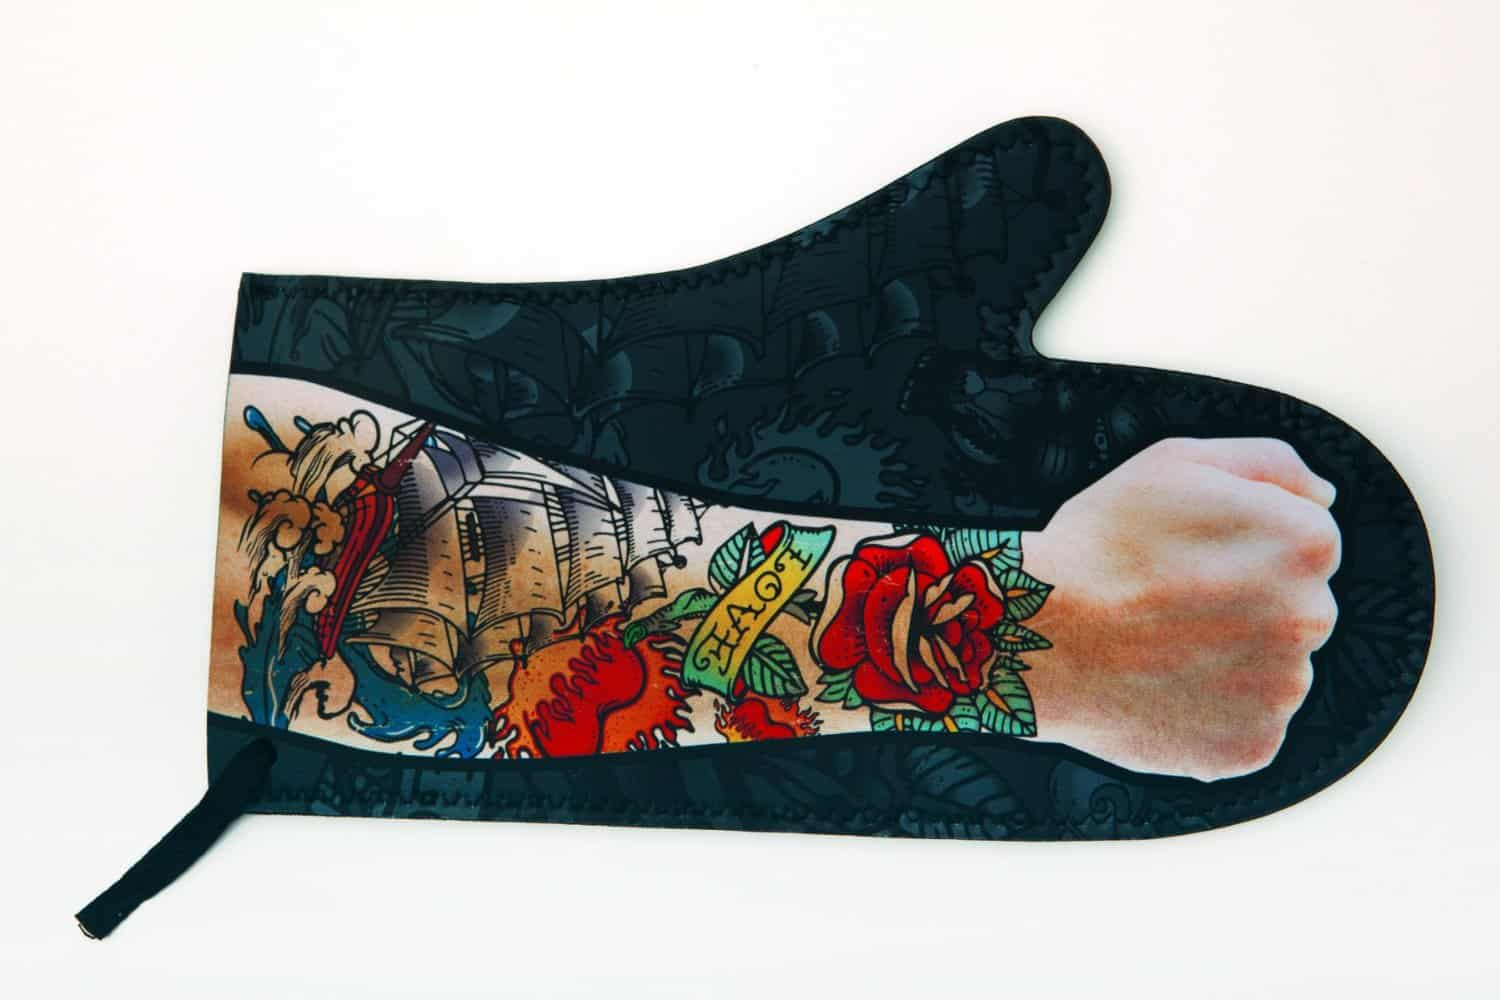 DCI Tattoo Oven Mitt Cool Novelty Item to Buy